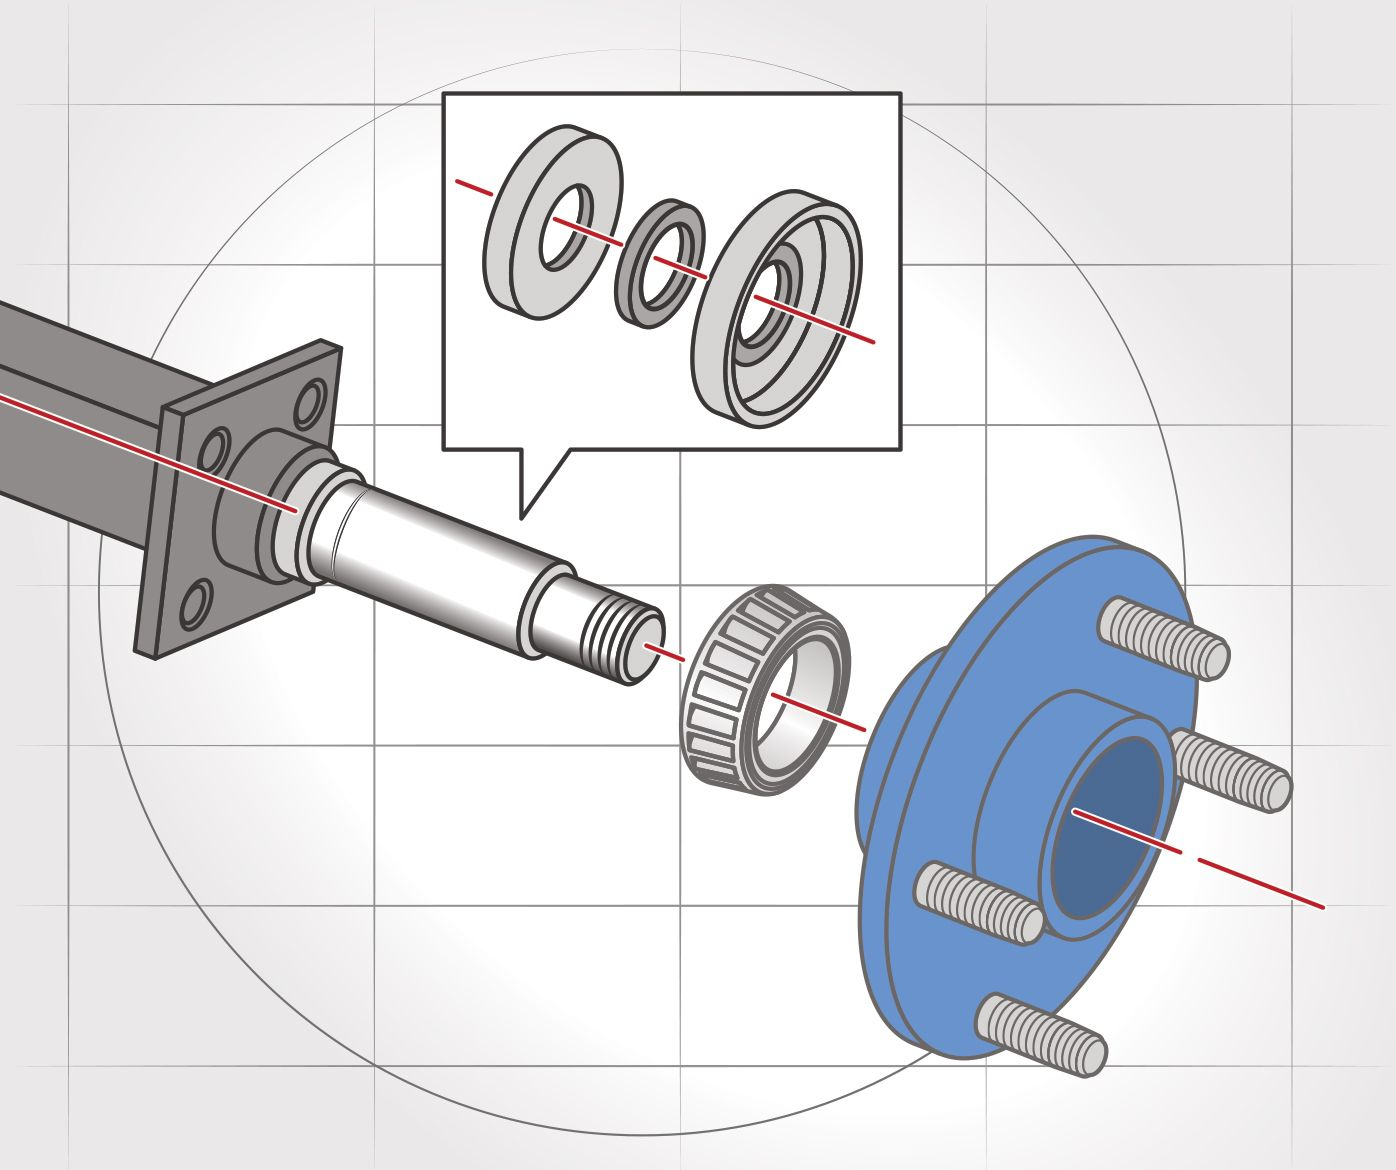 small resolution of properly servicing your trailer wheel bearings will keep your rig rolling